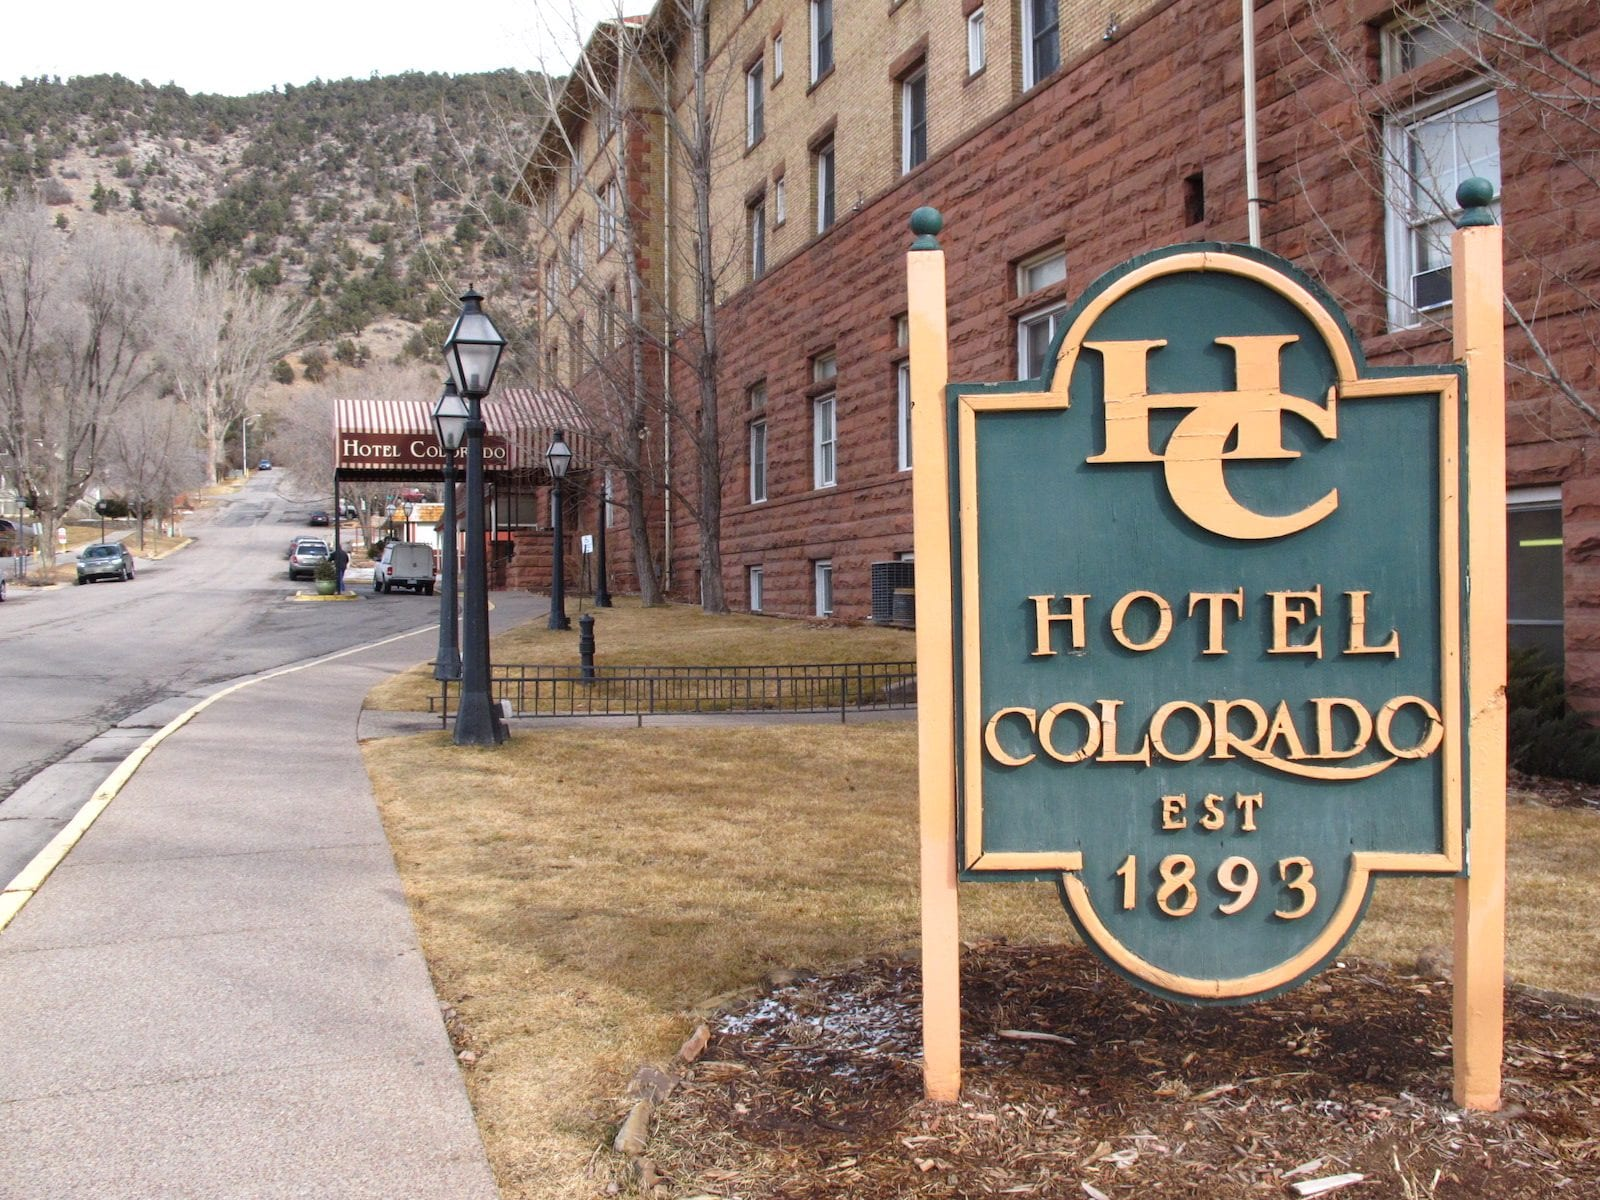 Hotel Colorado in Glenwood Springs, Colorado